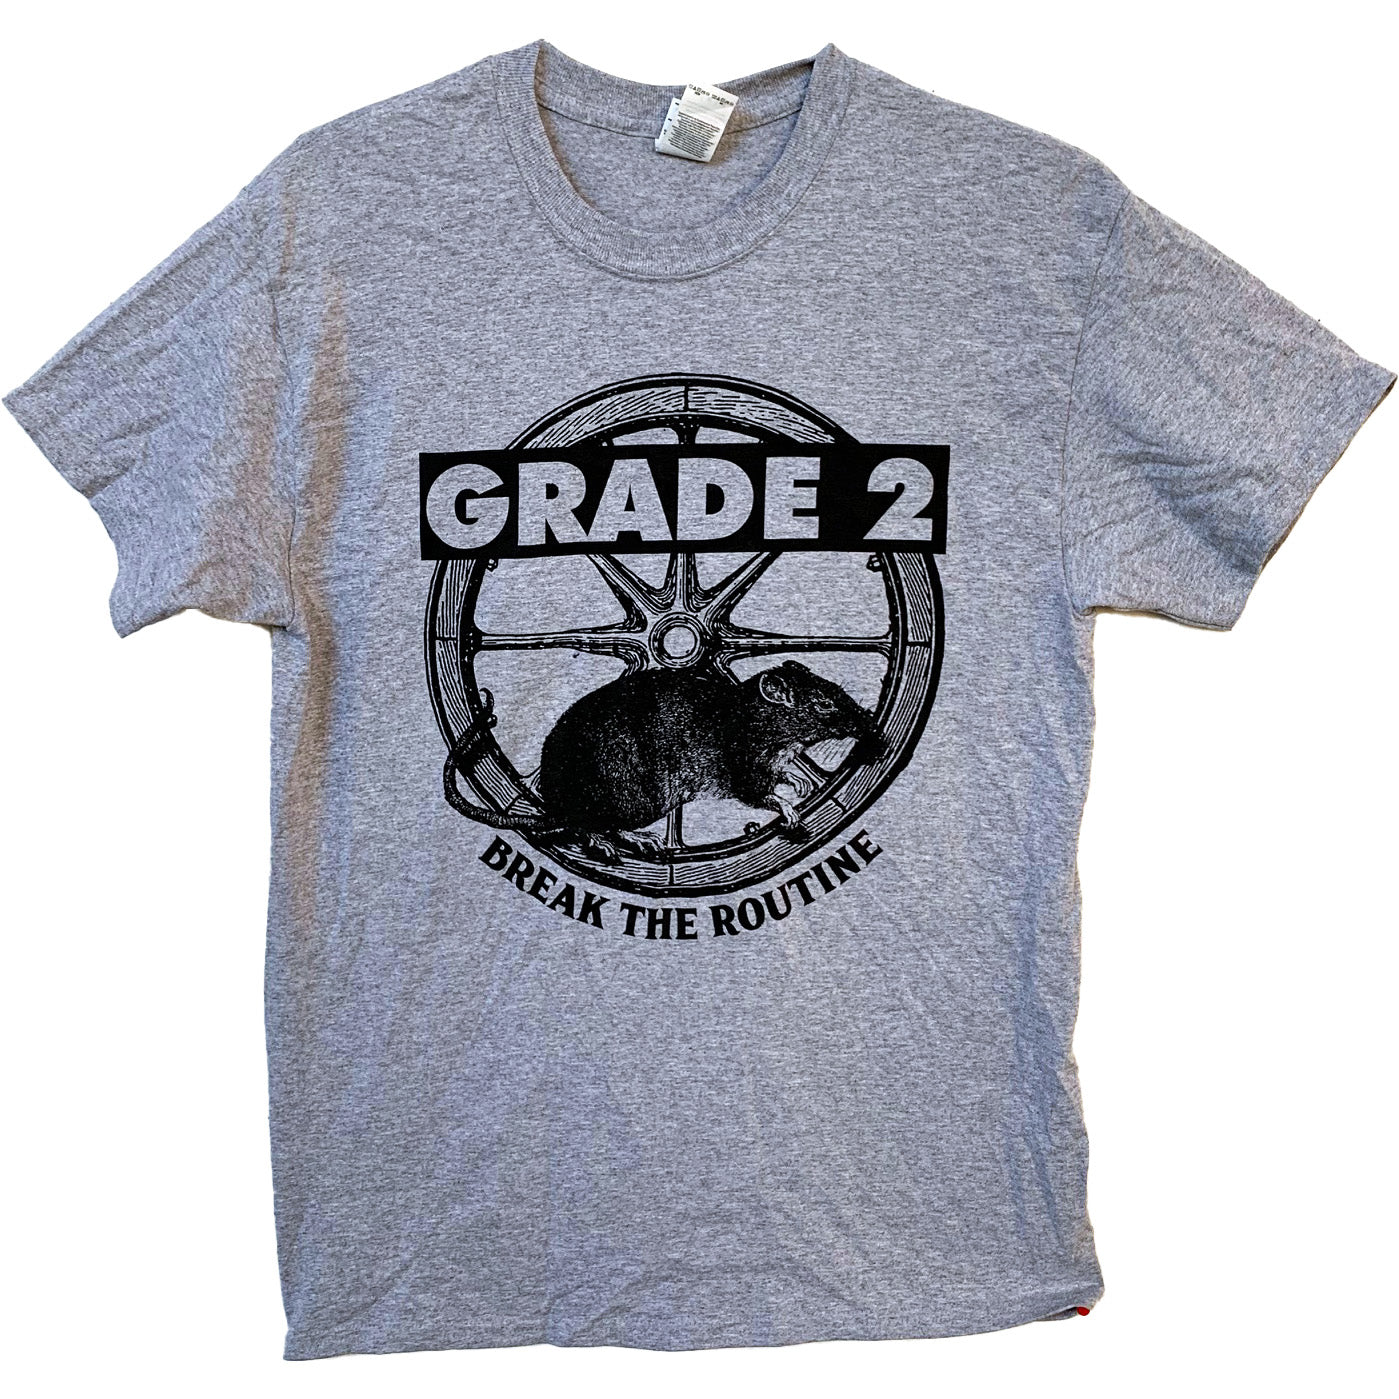 Grade 2 - Break The Routine - Grey - T-Shirt